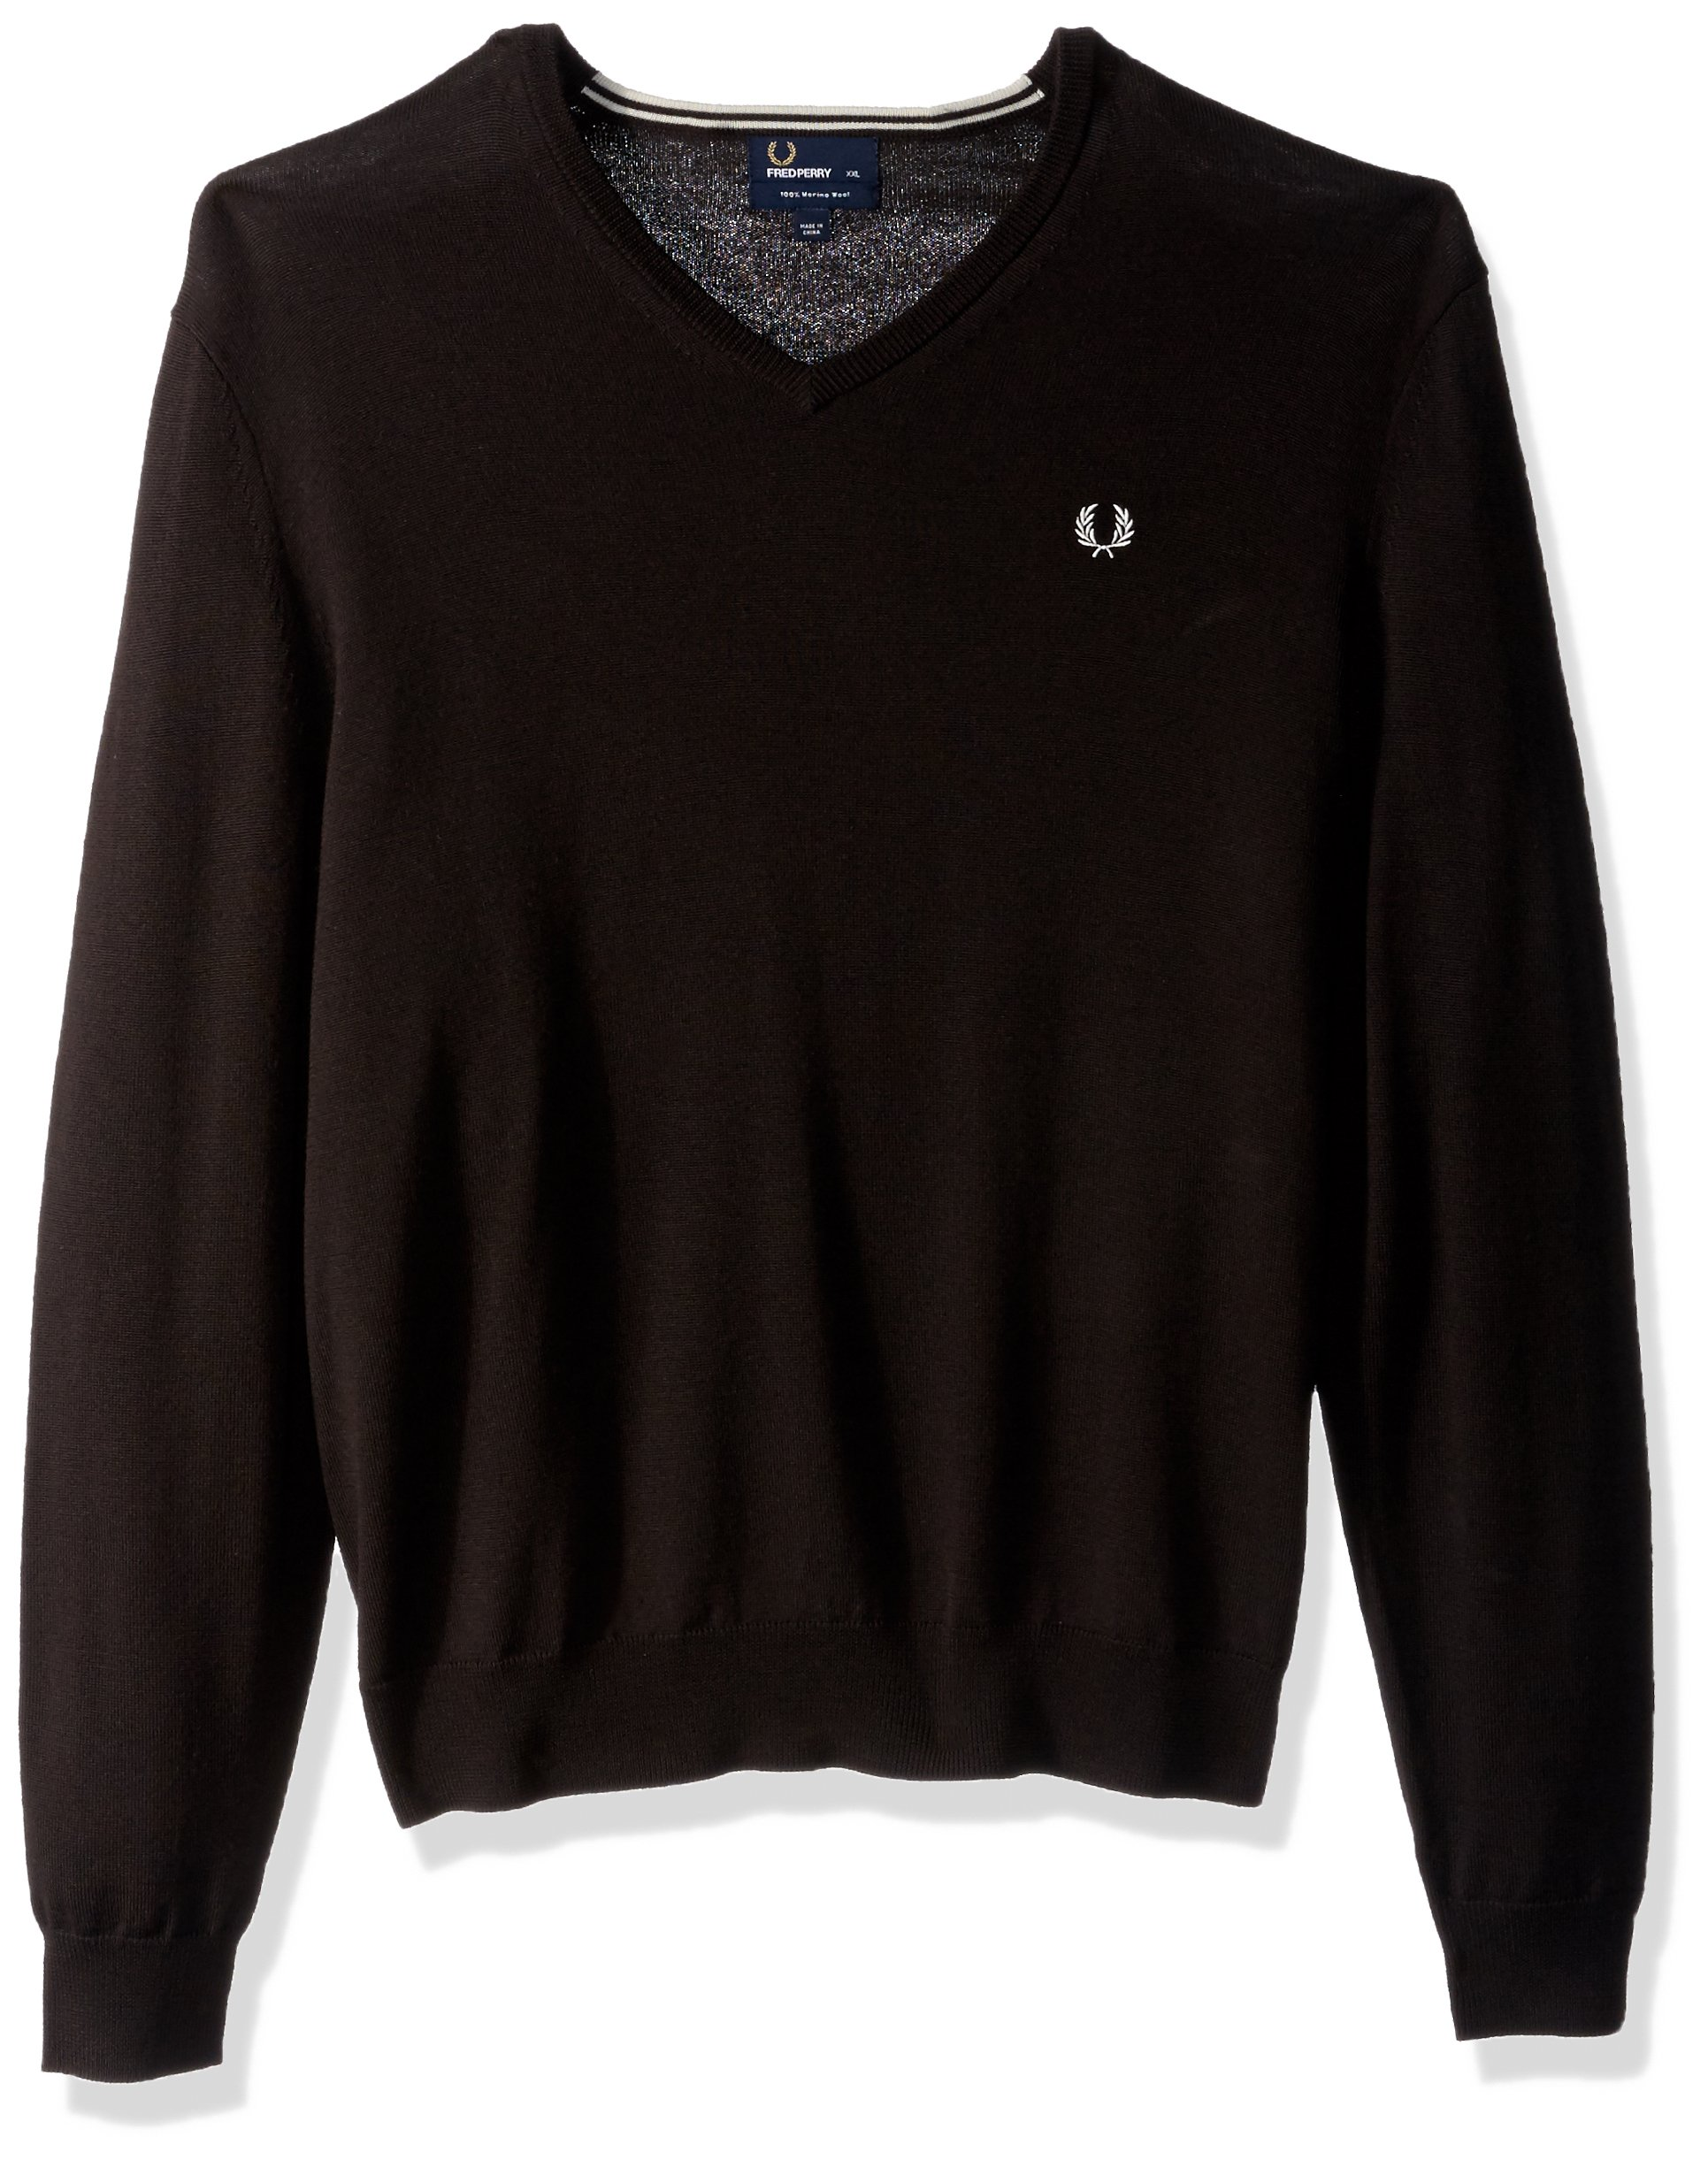 Fred Perry Men's Classic Tipped V Neck Sweater, Dark Chocolate, Small